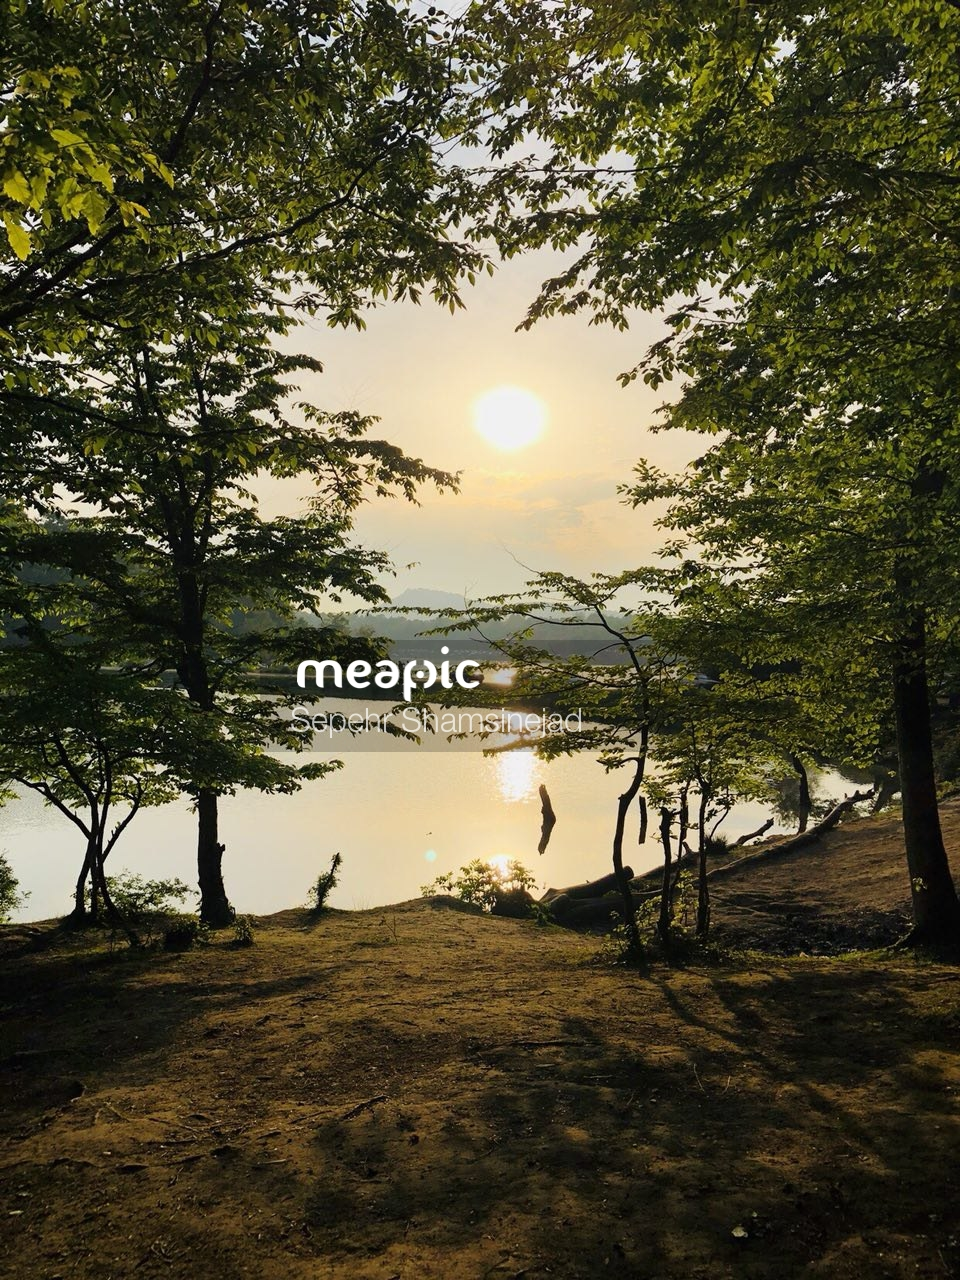 Tree Next To A Body Of Water Stock Photo · Meapic